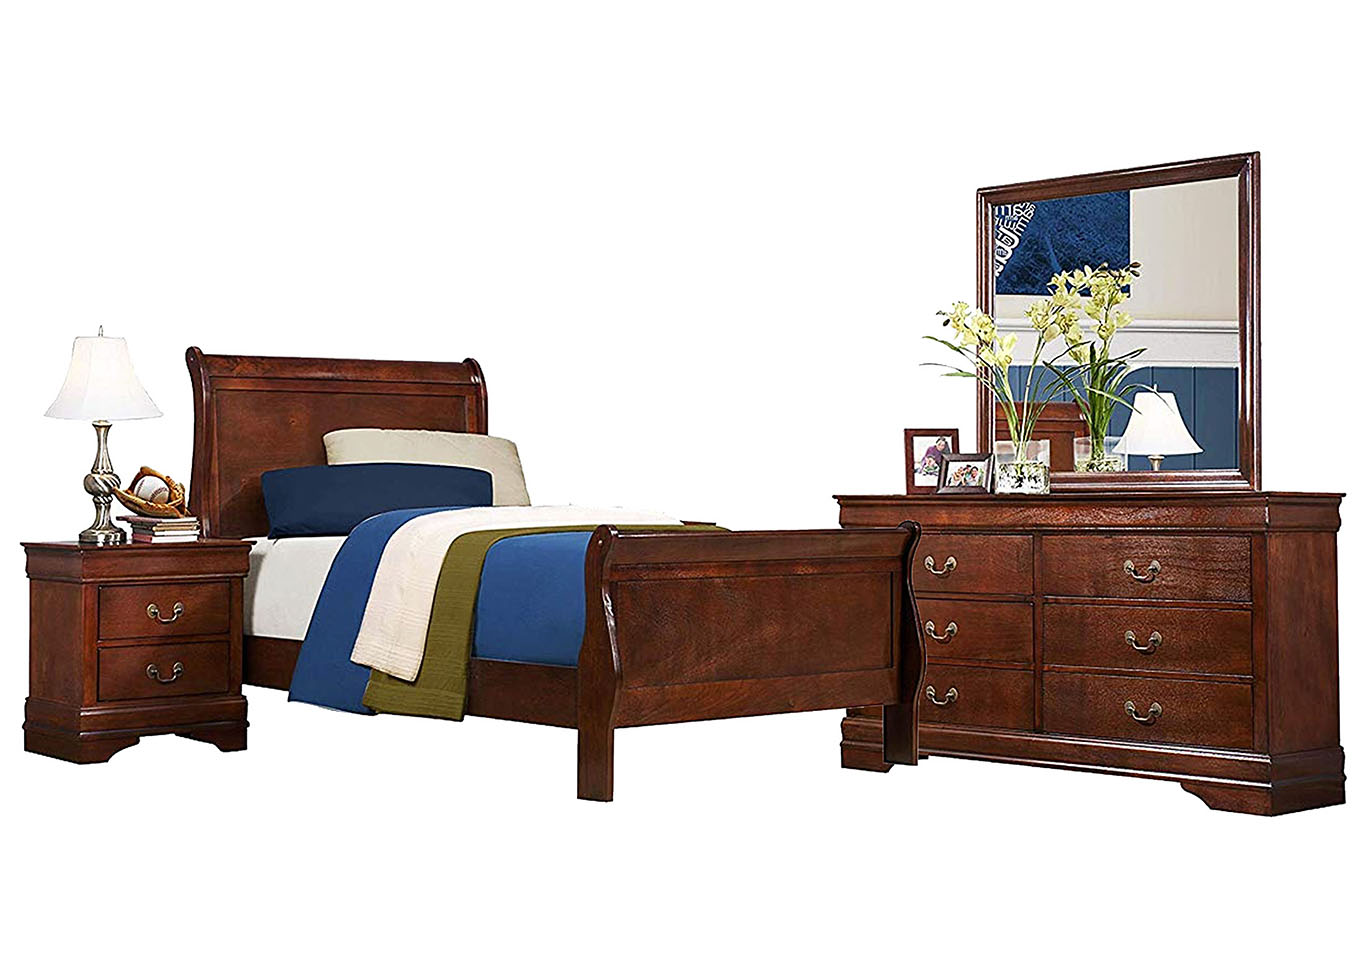 LOUIS PHILIP CHERRY FULL BEDROOM SET,CROWN MARK INT.